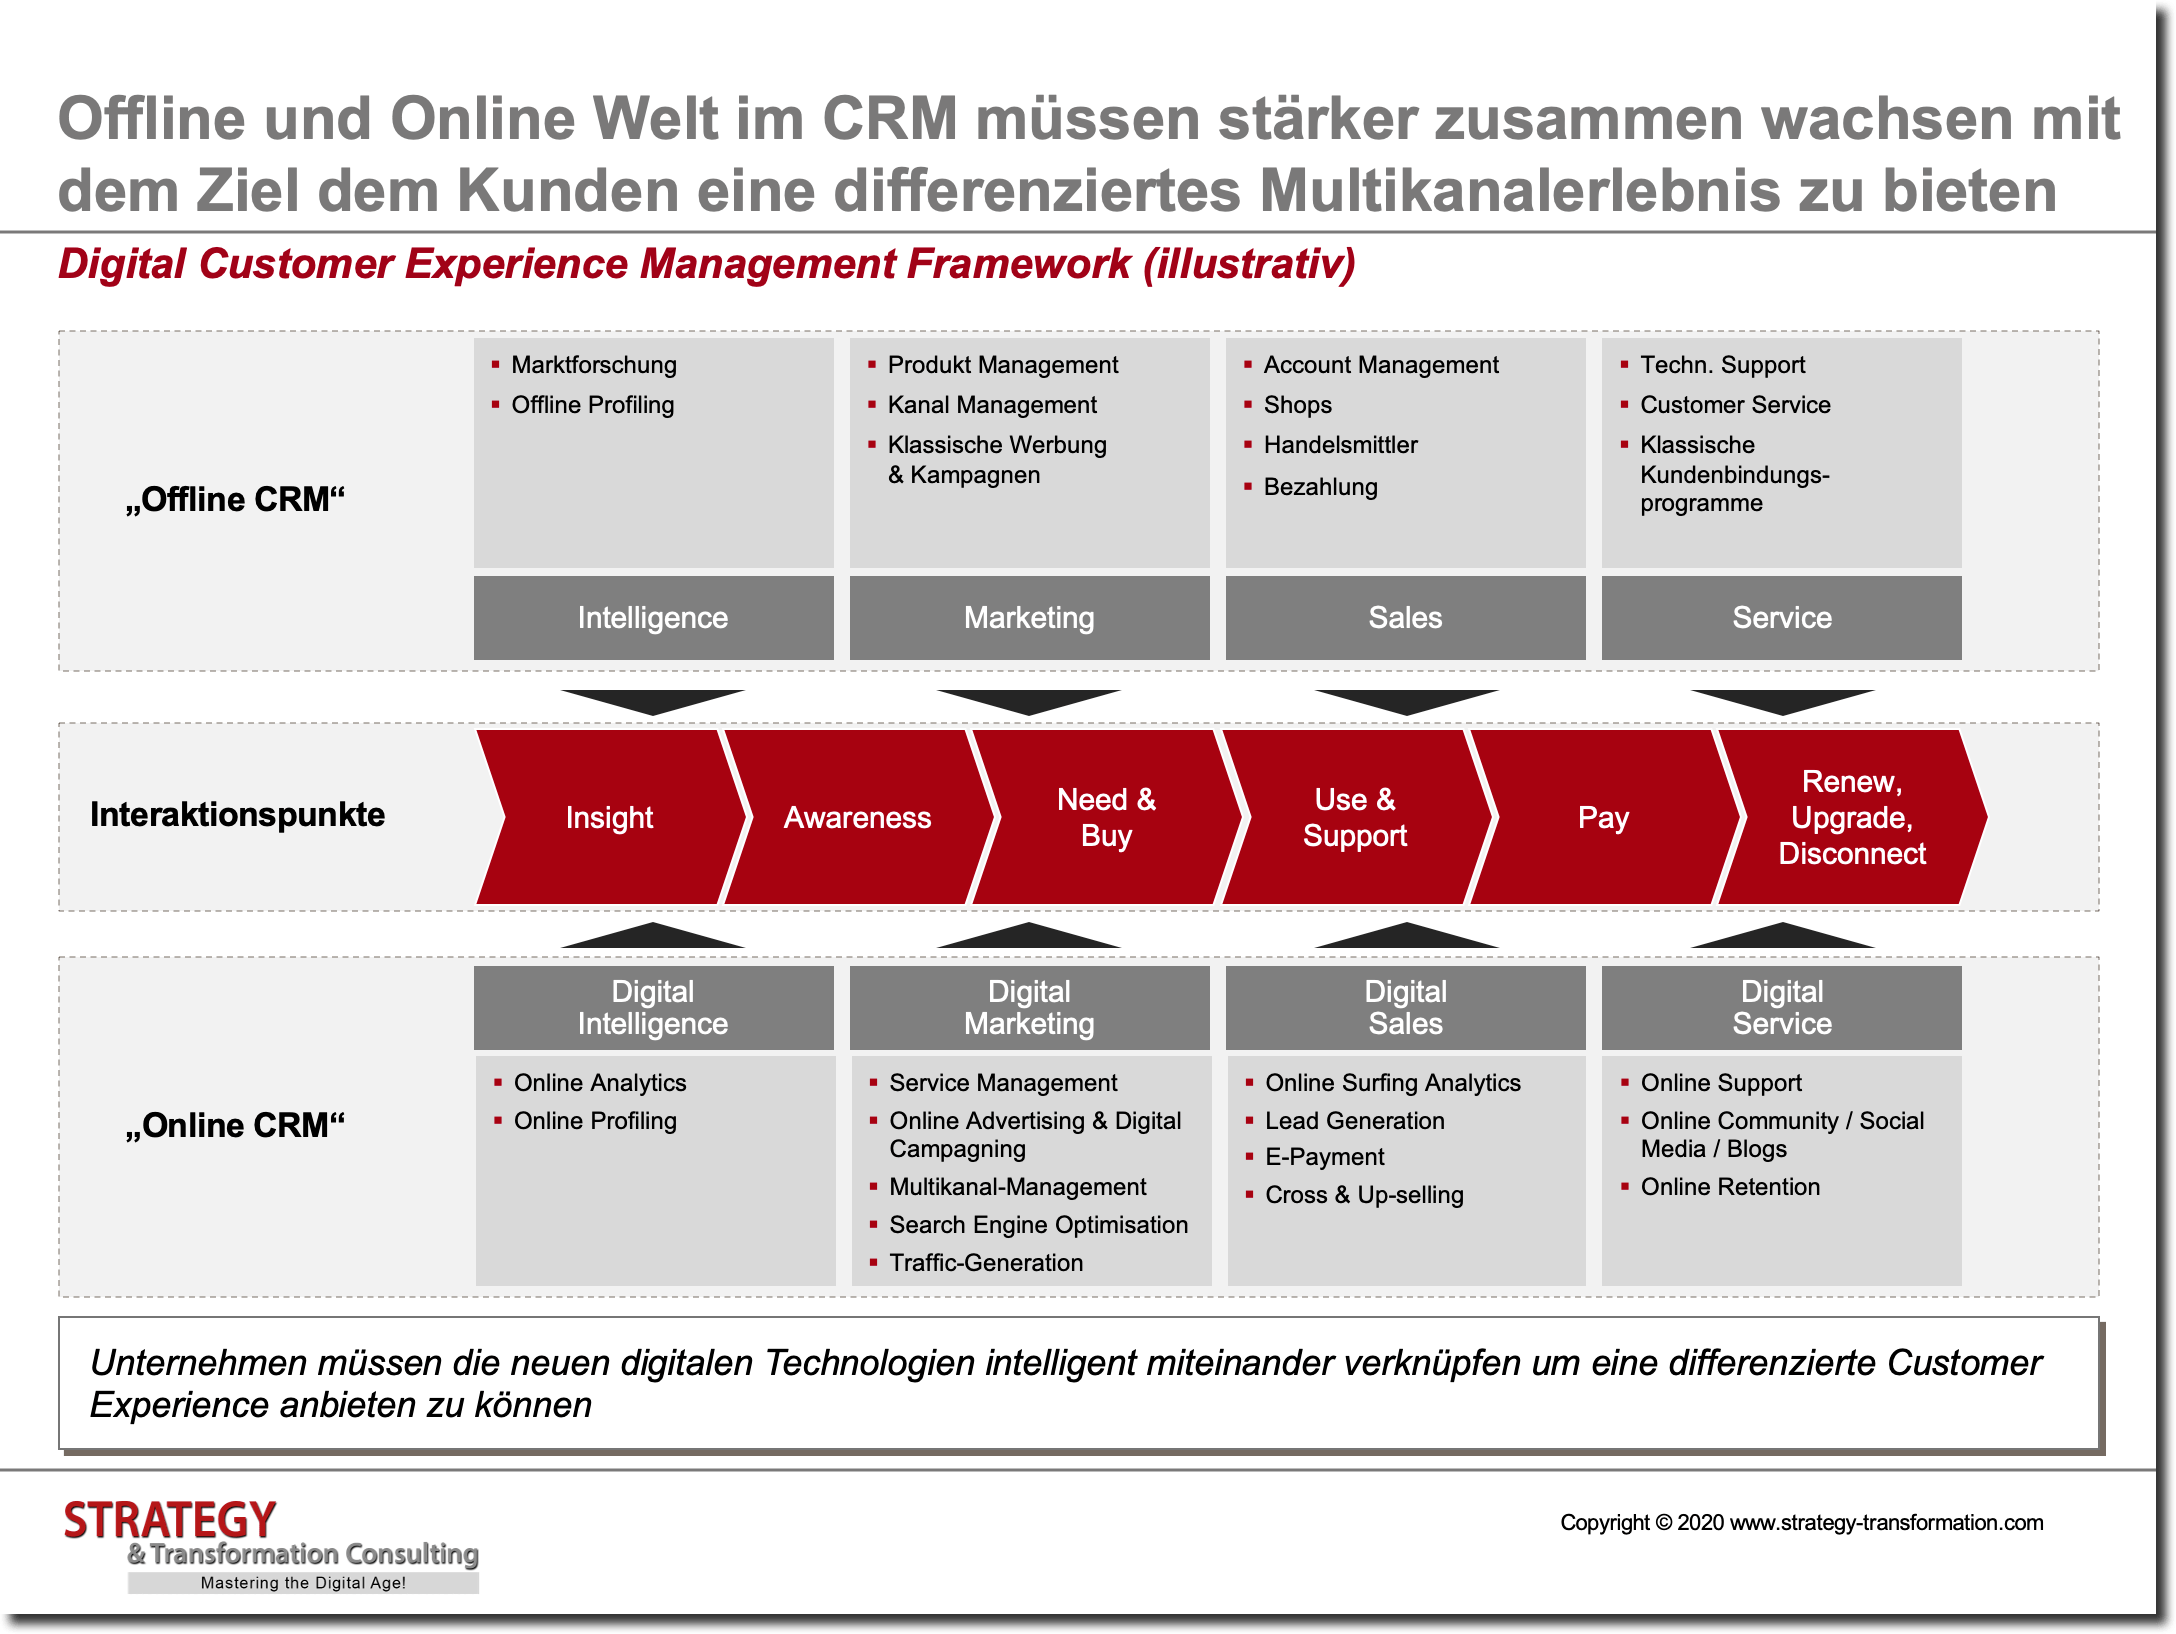 Digital Customer Experience Management Framework